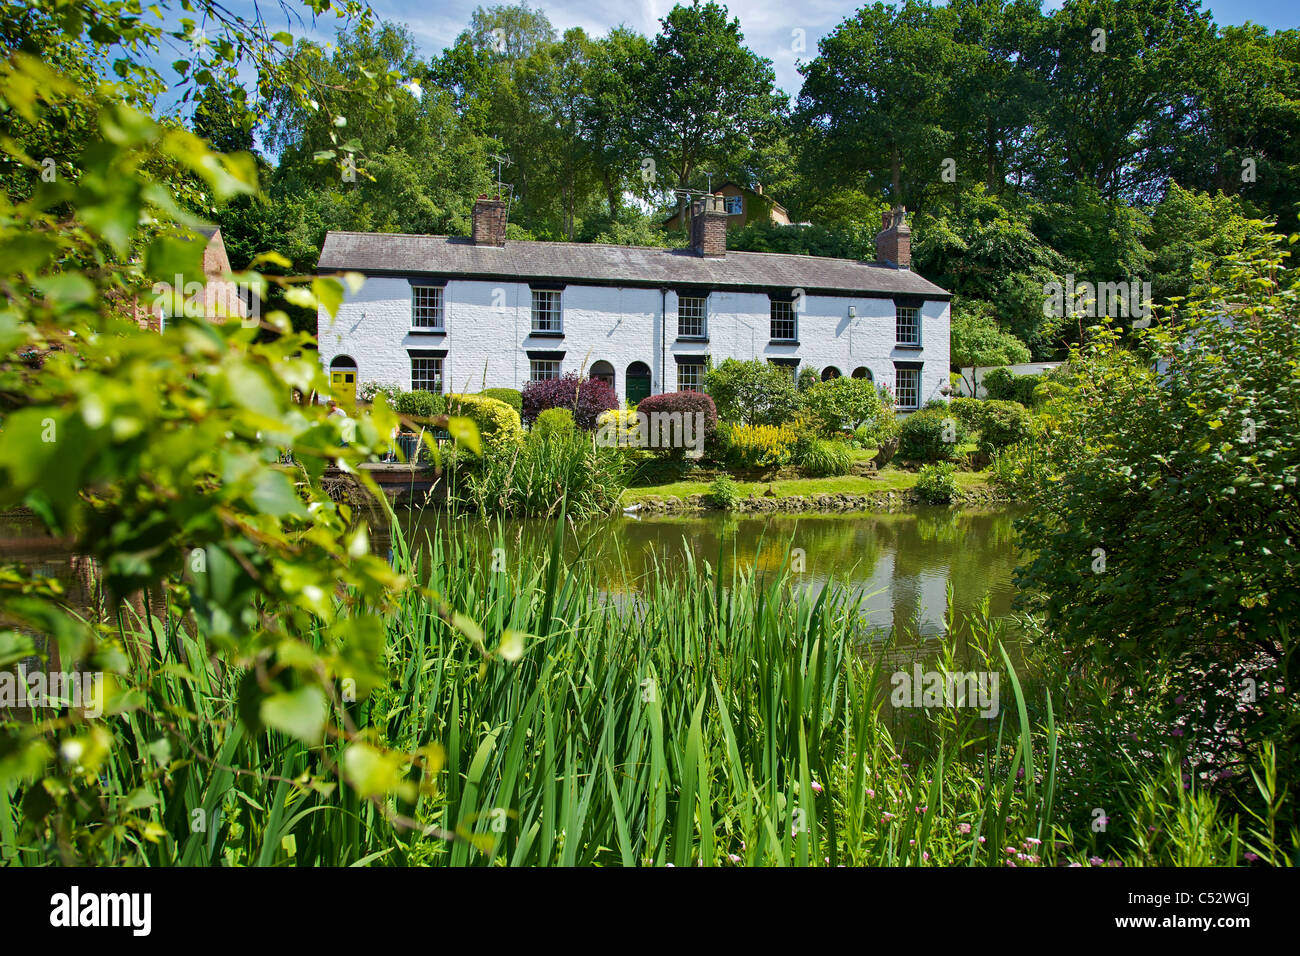 Cottages in The Dingle, Lymm Cheshire. - Stock Image